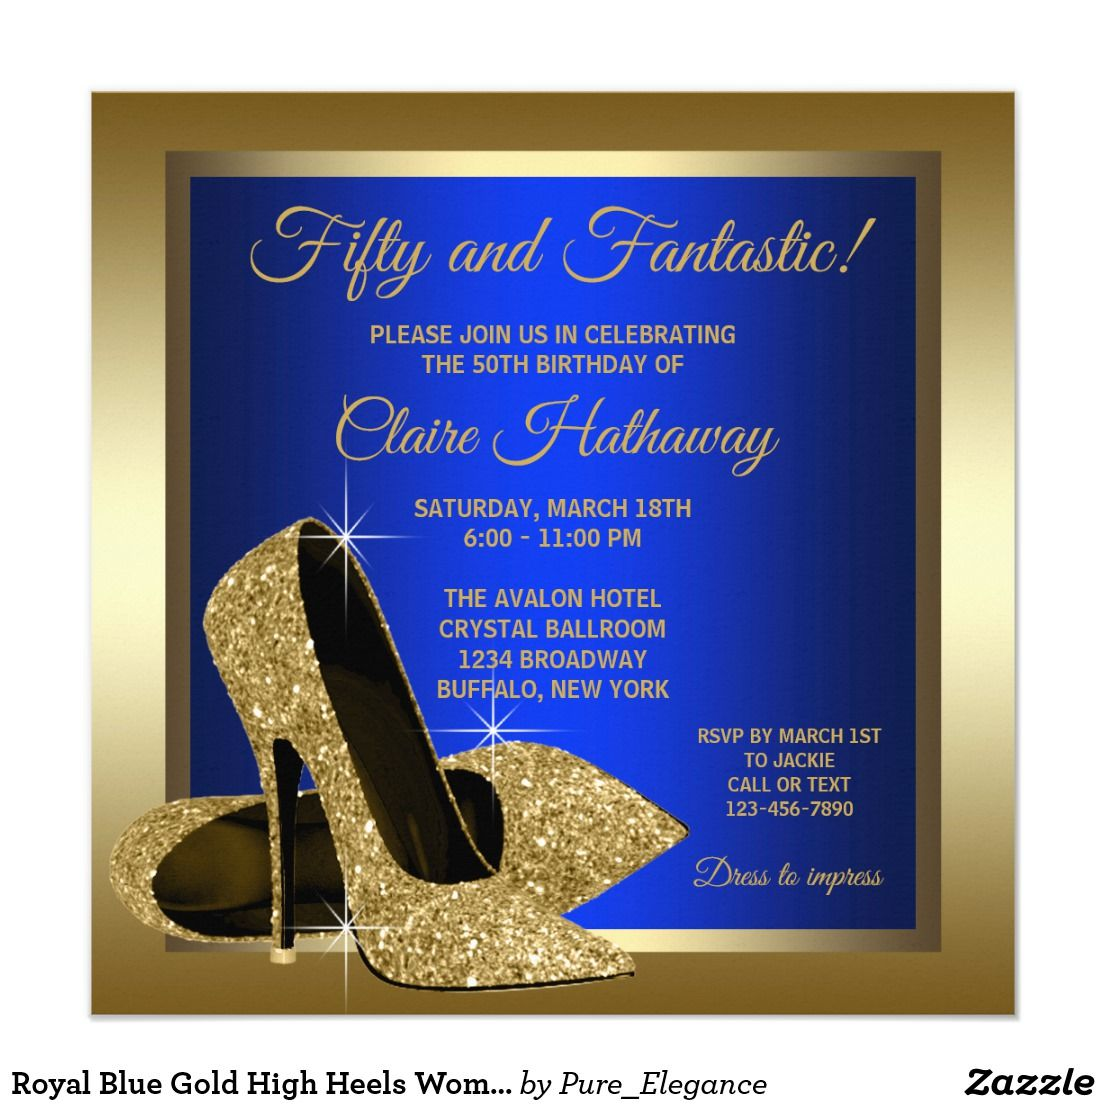 Royal Blue Gold High Heels Womans Birthday Party Card | 80s party ...